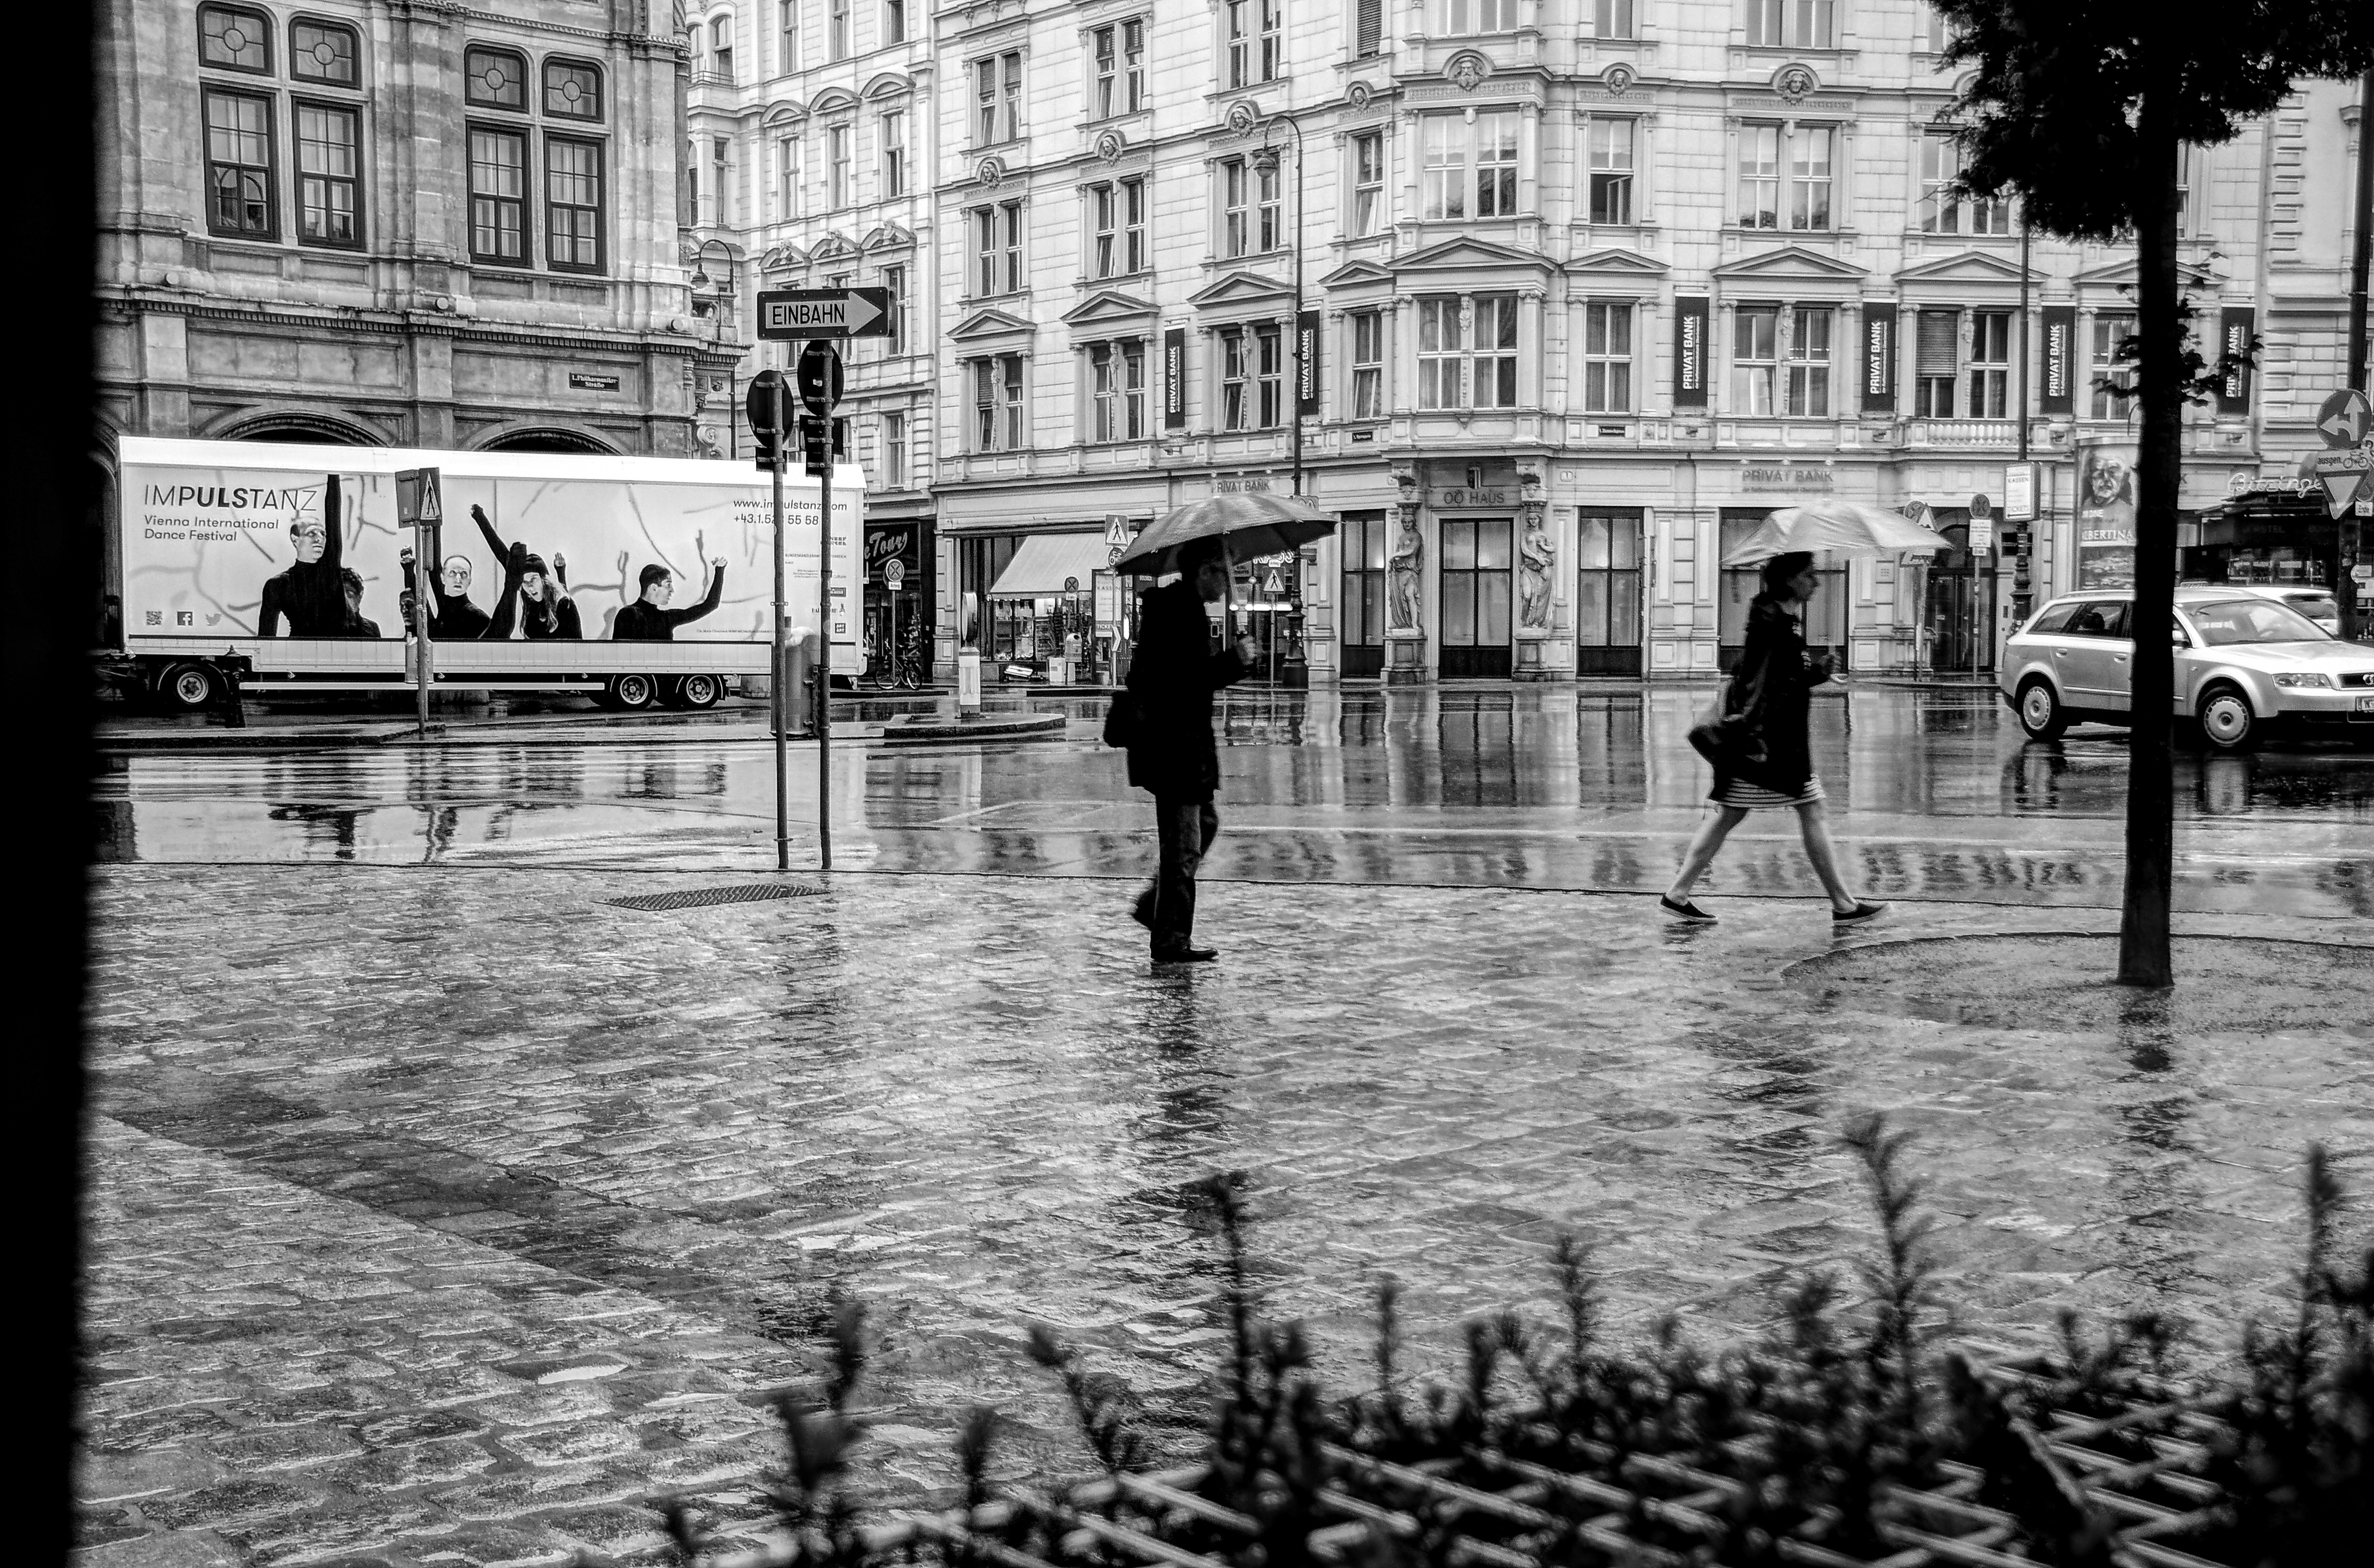 Man and woman walking on road while holding umbrella photo